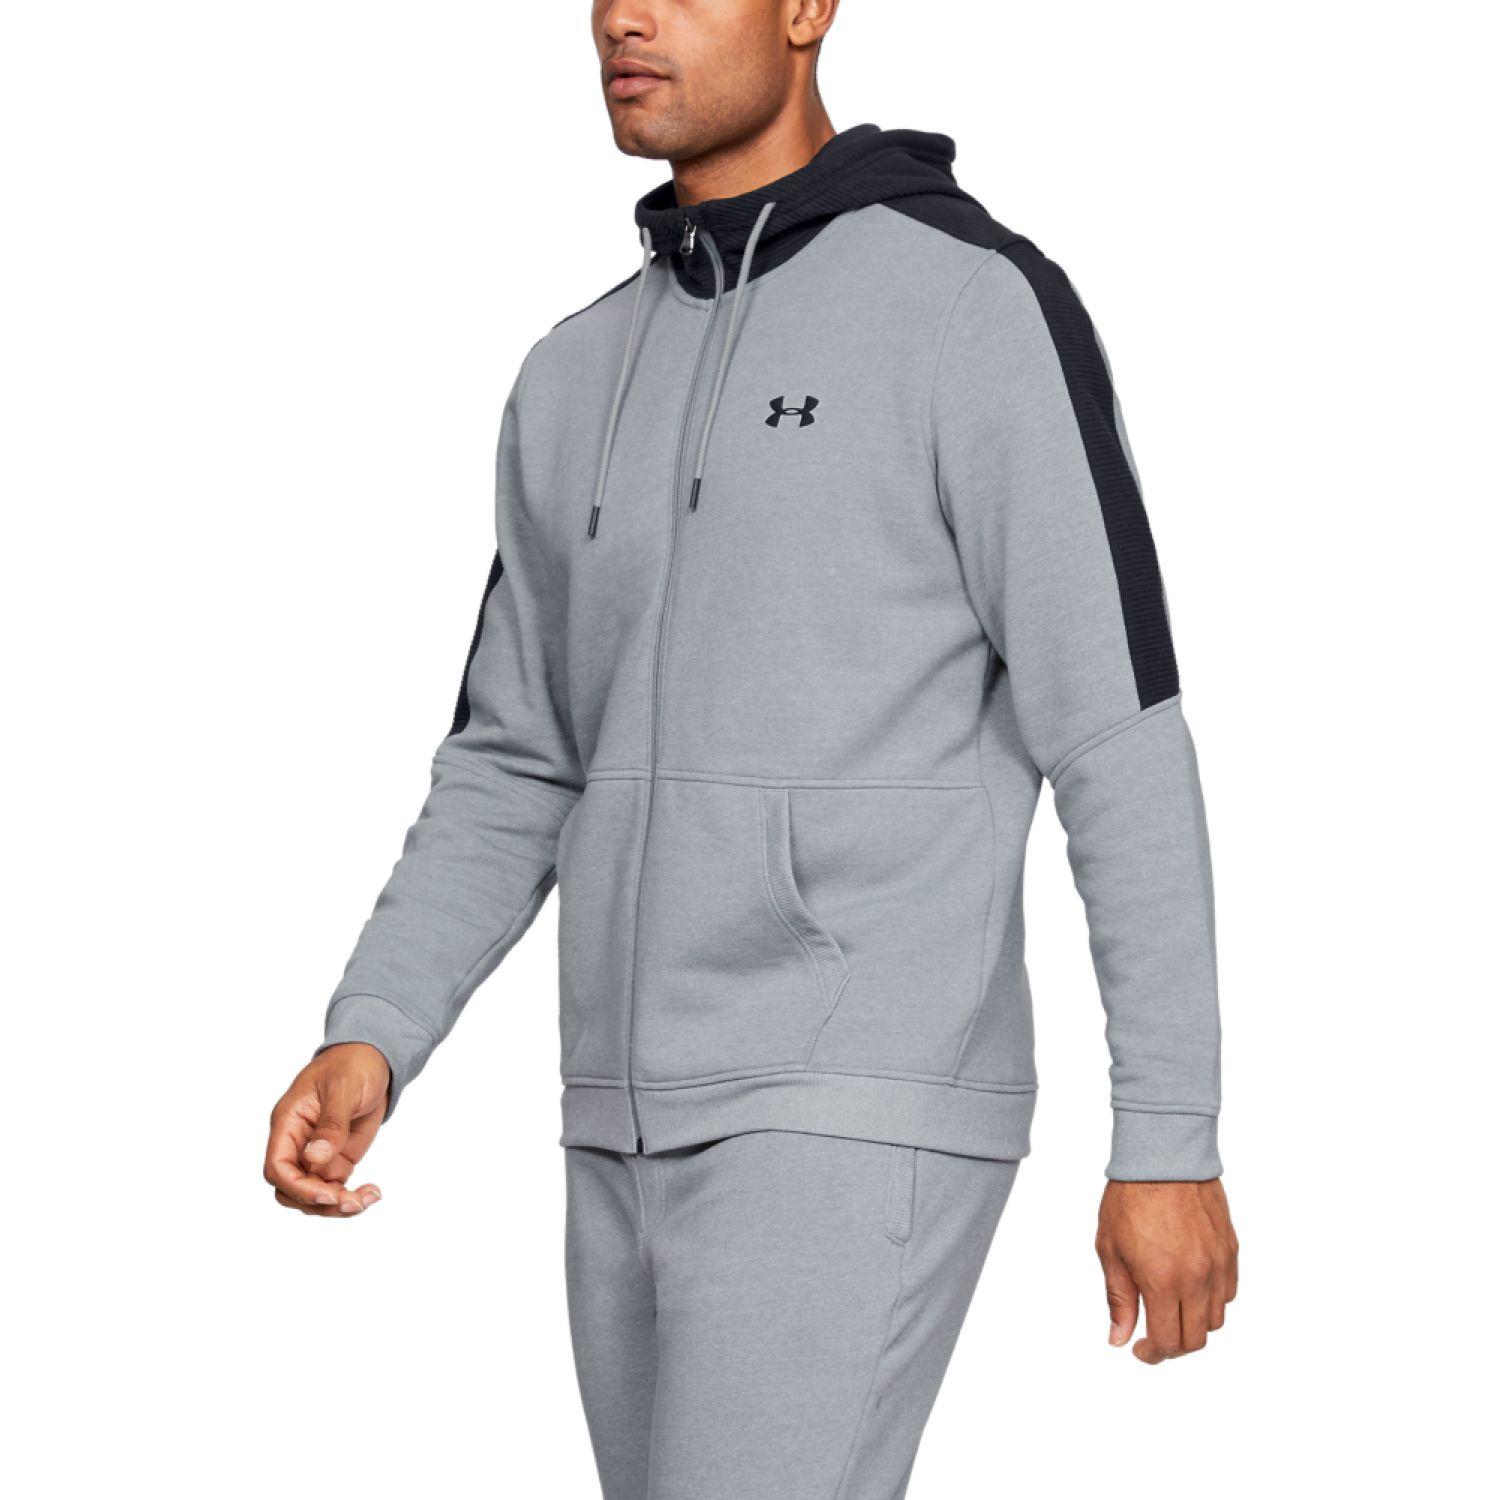 Under Armour microthread fleece fz Gris / negro Hoodies y Sweaters Fashion